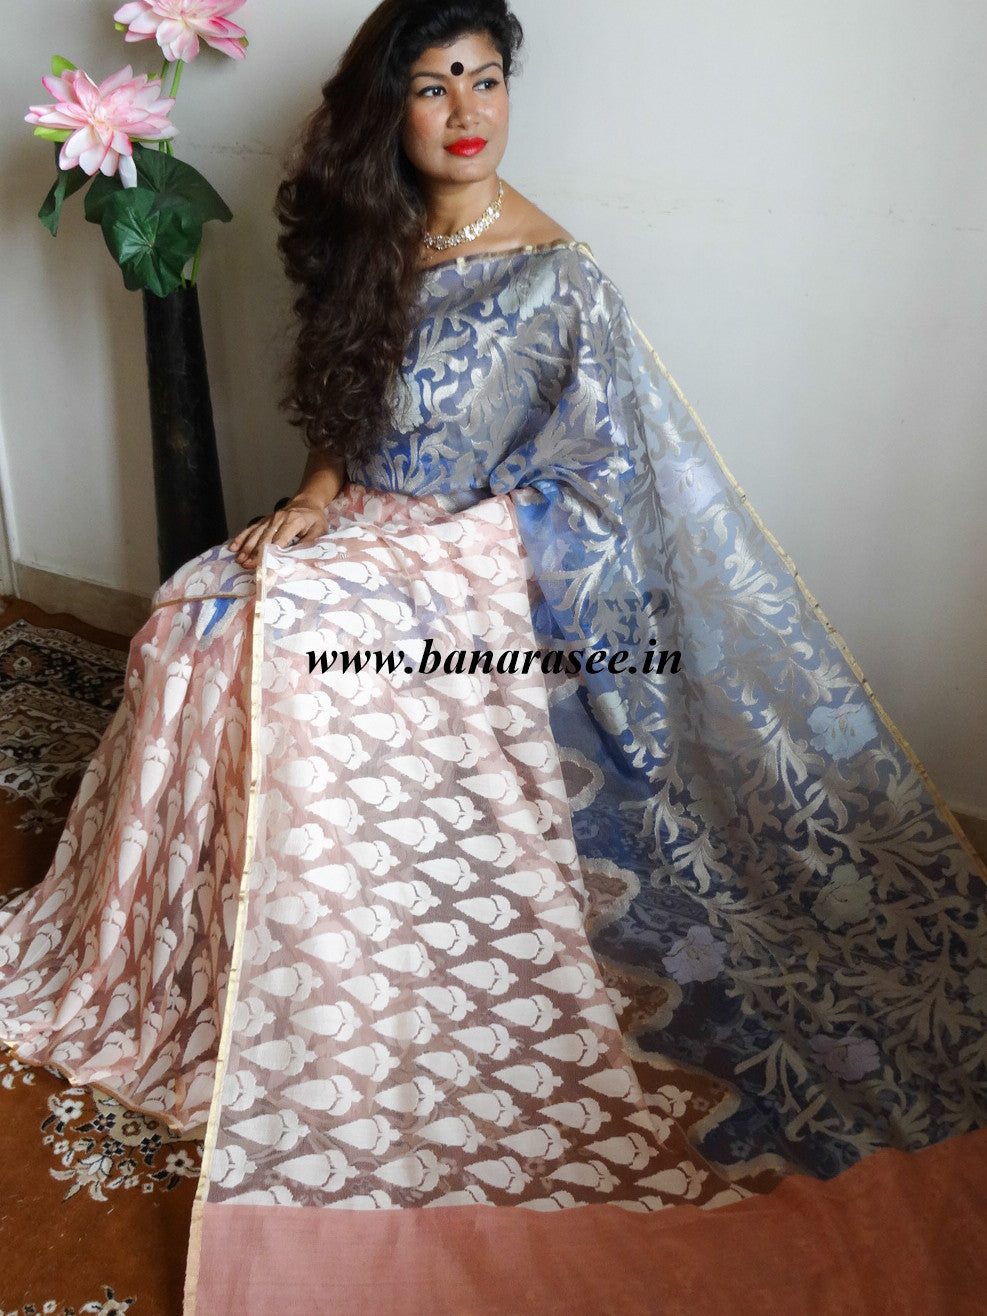 Banarasee/Banarasee Pure Net & Linen Handloom Saree in Half & Half Design-Pink & Blue